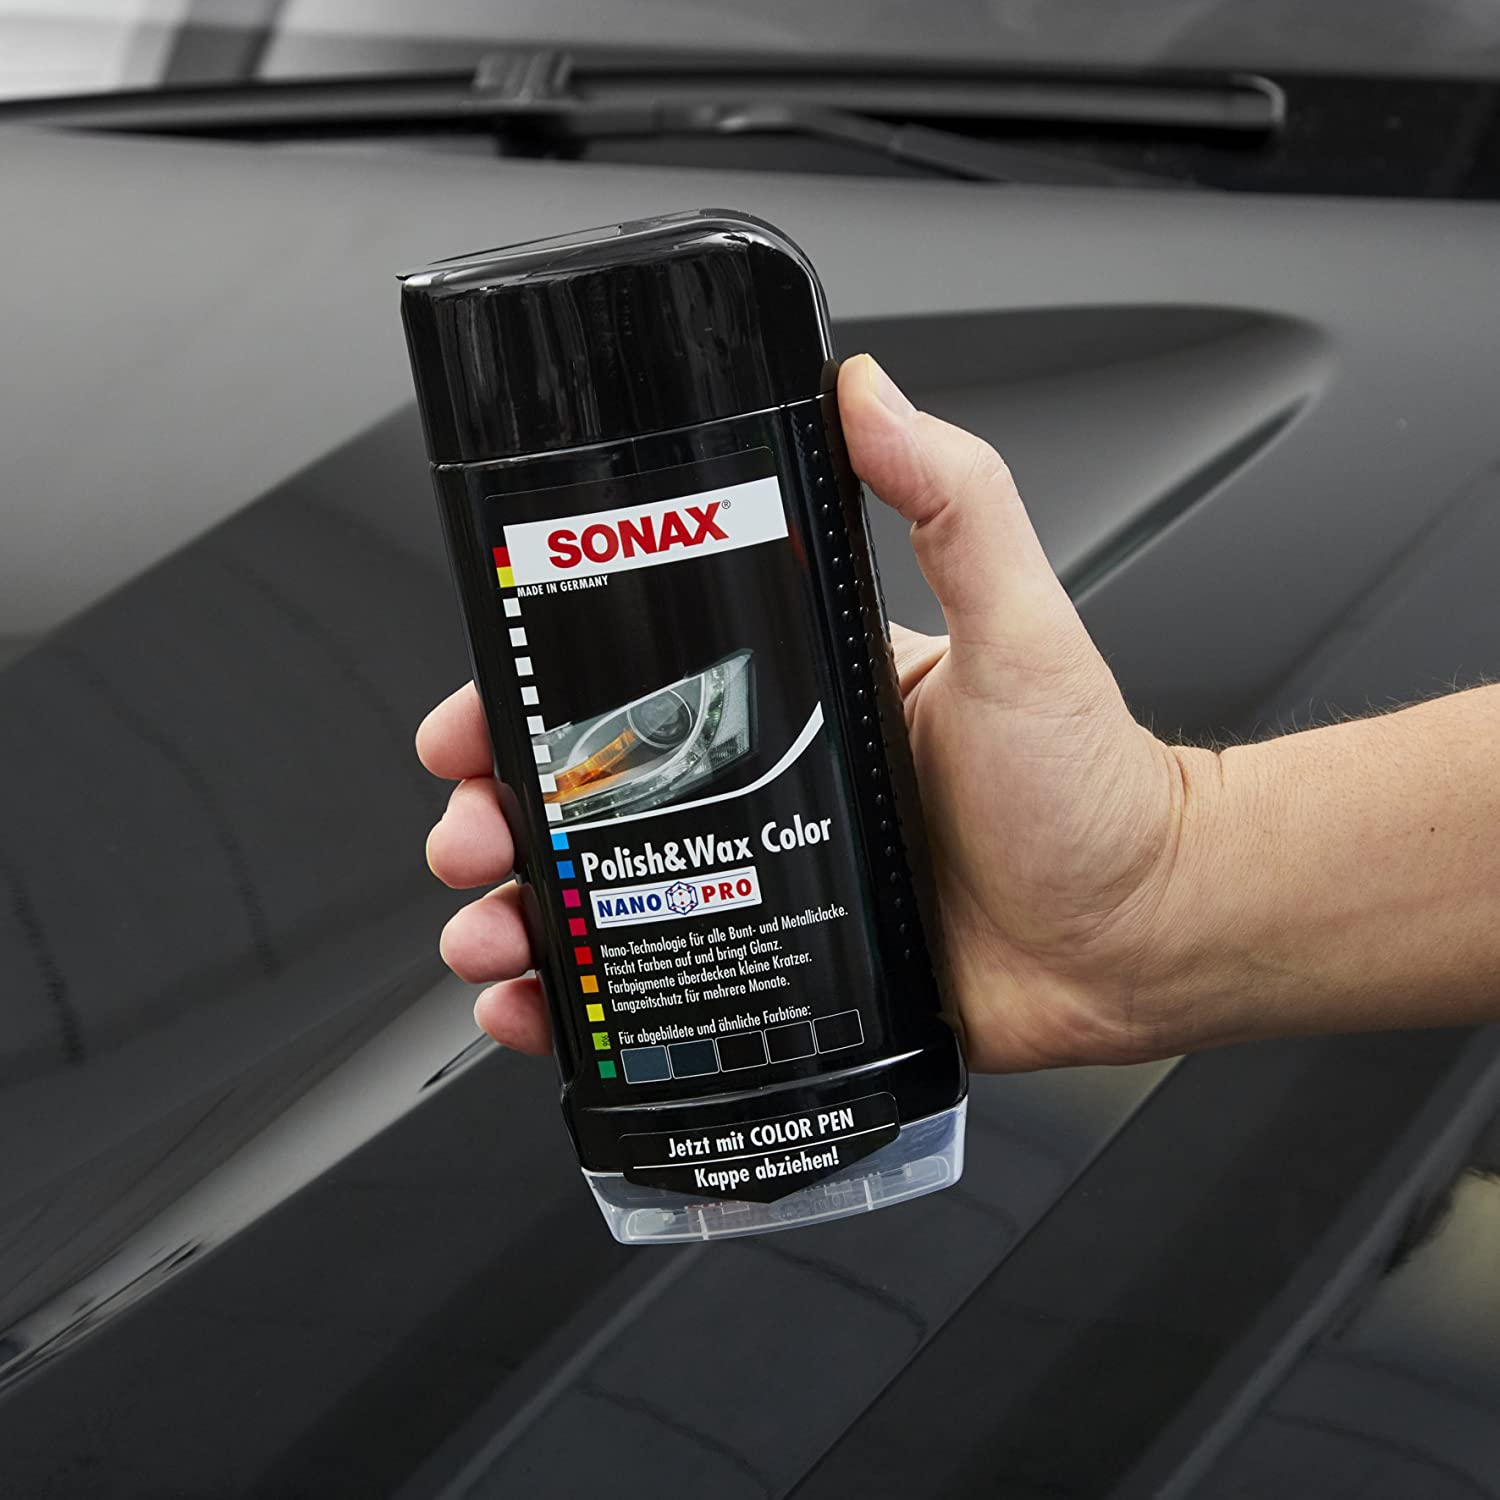 Come Lucidare La Macchina.Sonax 296100 Polish E Cera Nero 500ml Amazon It Auto E Moto